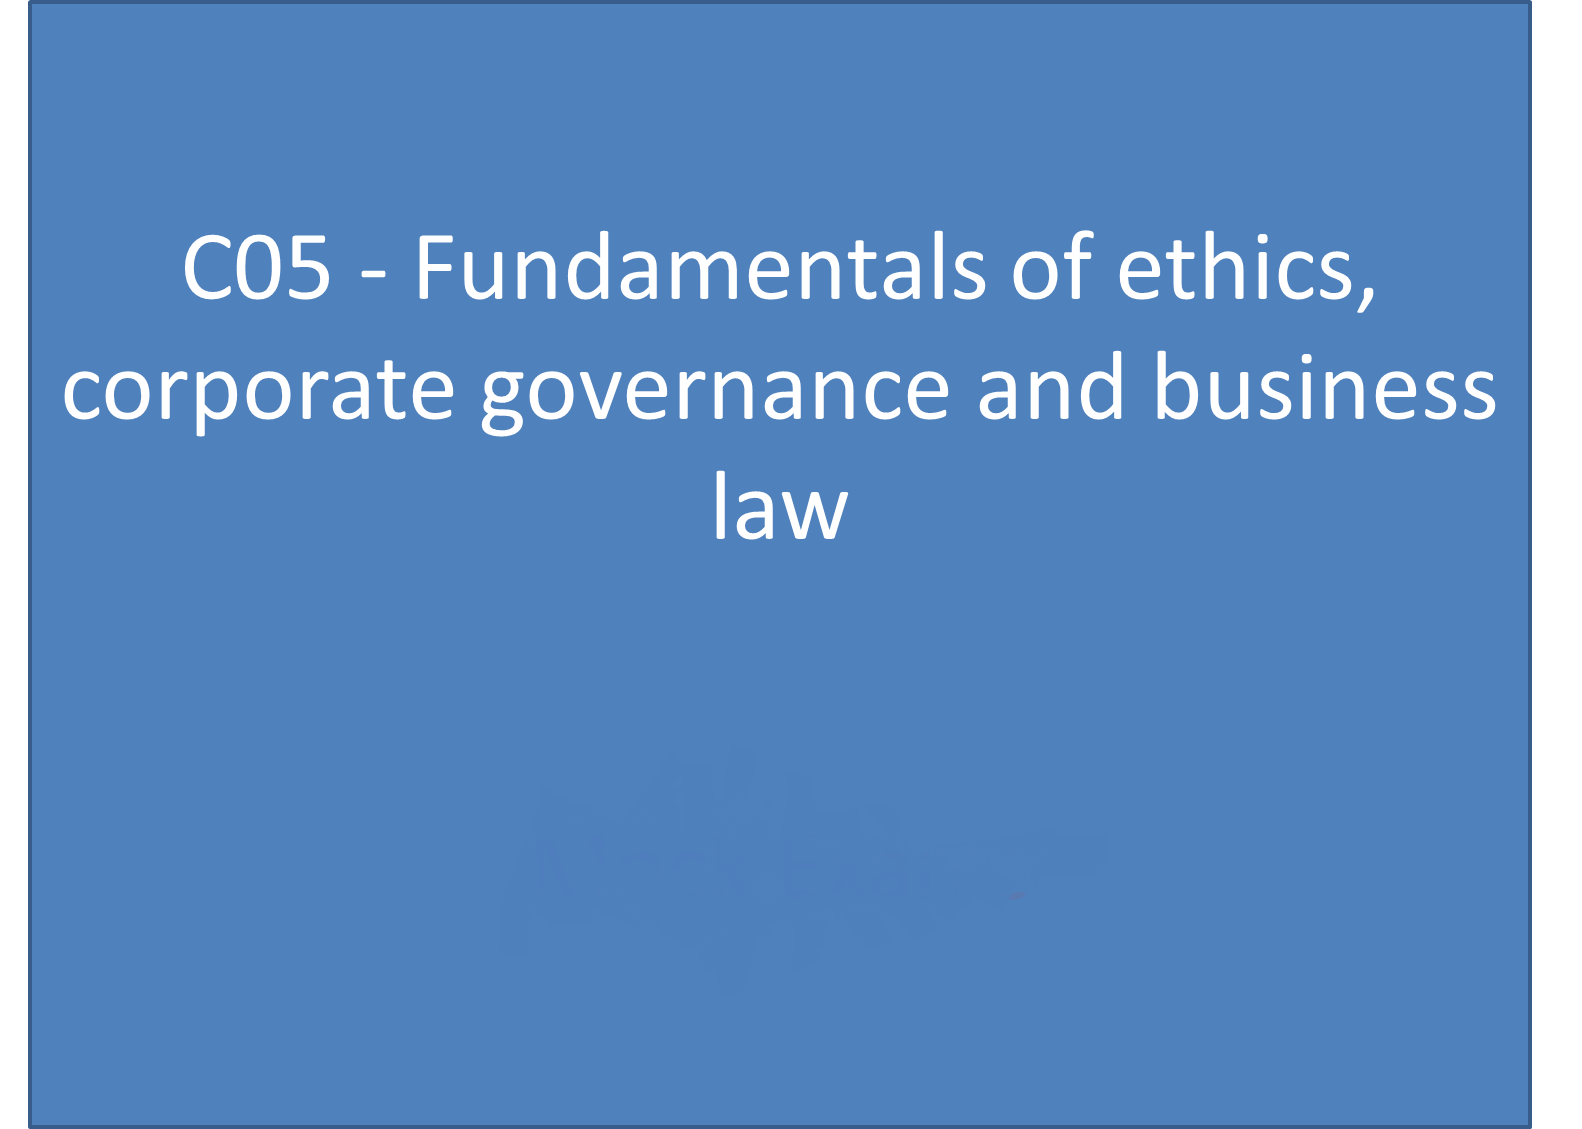 case study business ethics corporate governance Corporate governance values & ethics with case studies   covers the concepts of corporate governance and business ethics in lucid and student friendly manner .